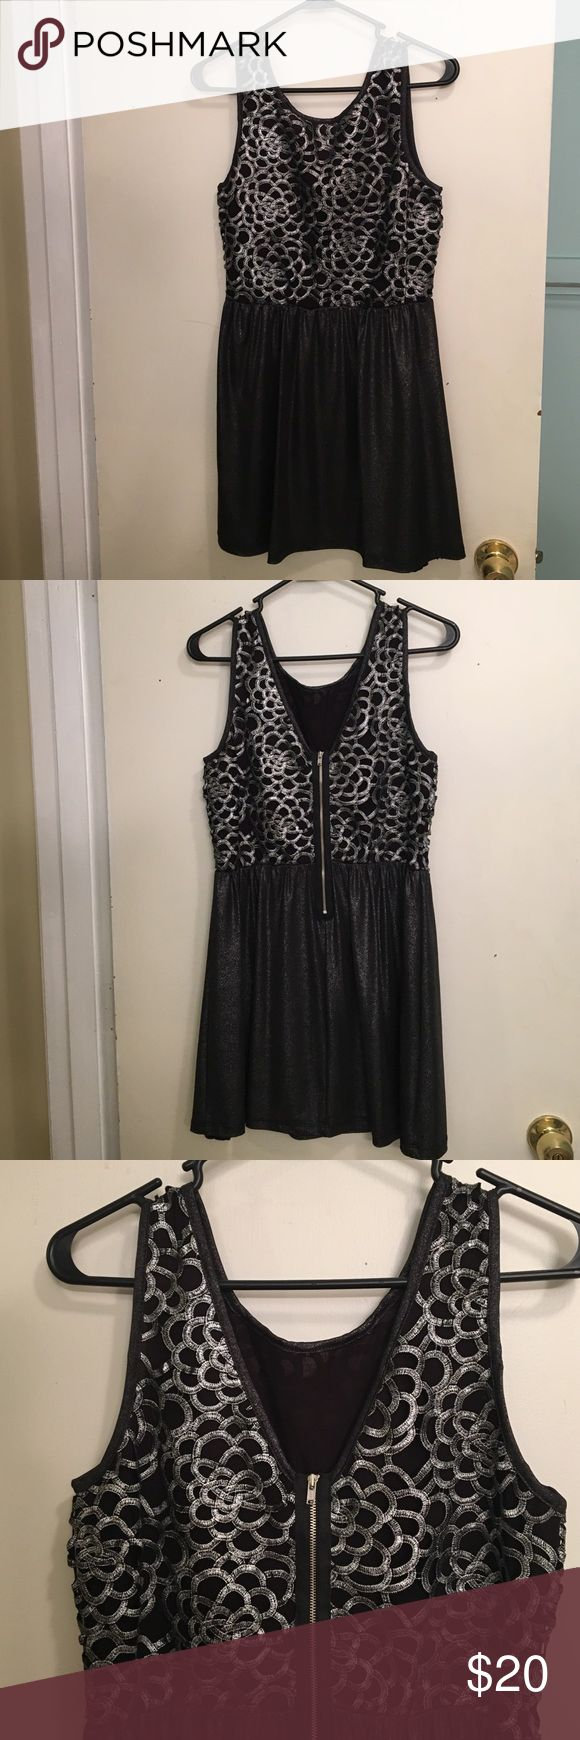 Black and silver dress NWOT. Never worn! I bought this dress but it ended up being too short for me as I am 5'9 with a long torso. Super cute on and comfortable though! Lovemarks Dresses Mini